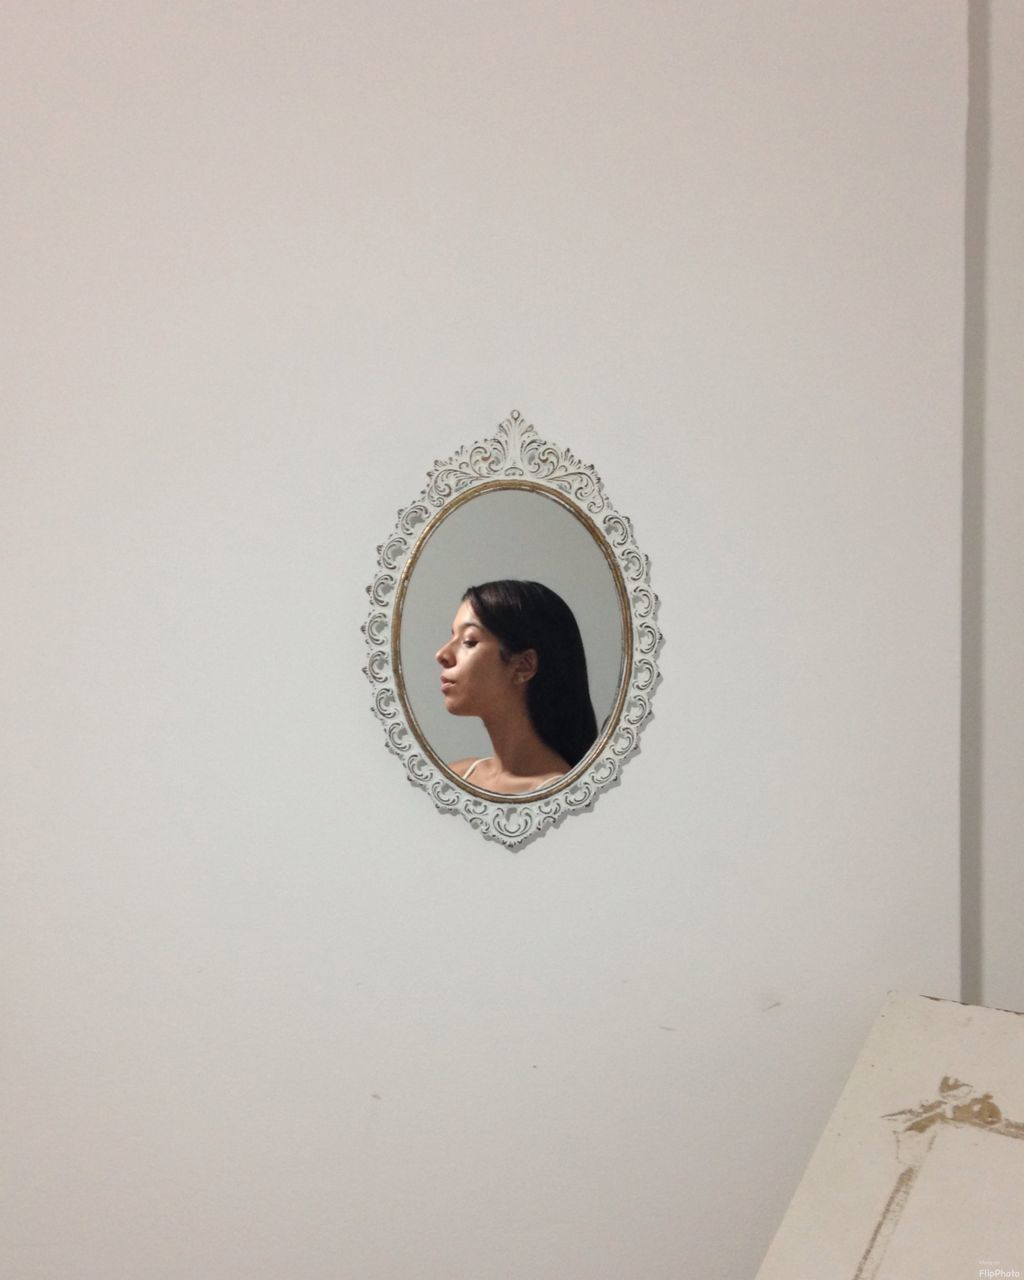 Reflection Of Woman On Mirror Mounted On Wall At Home